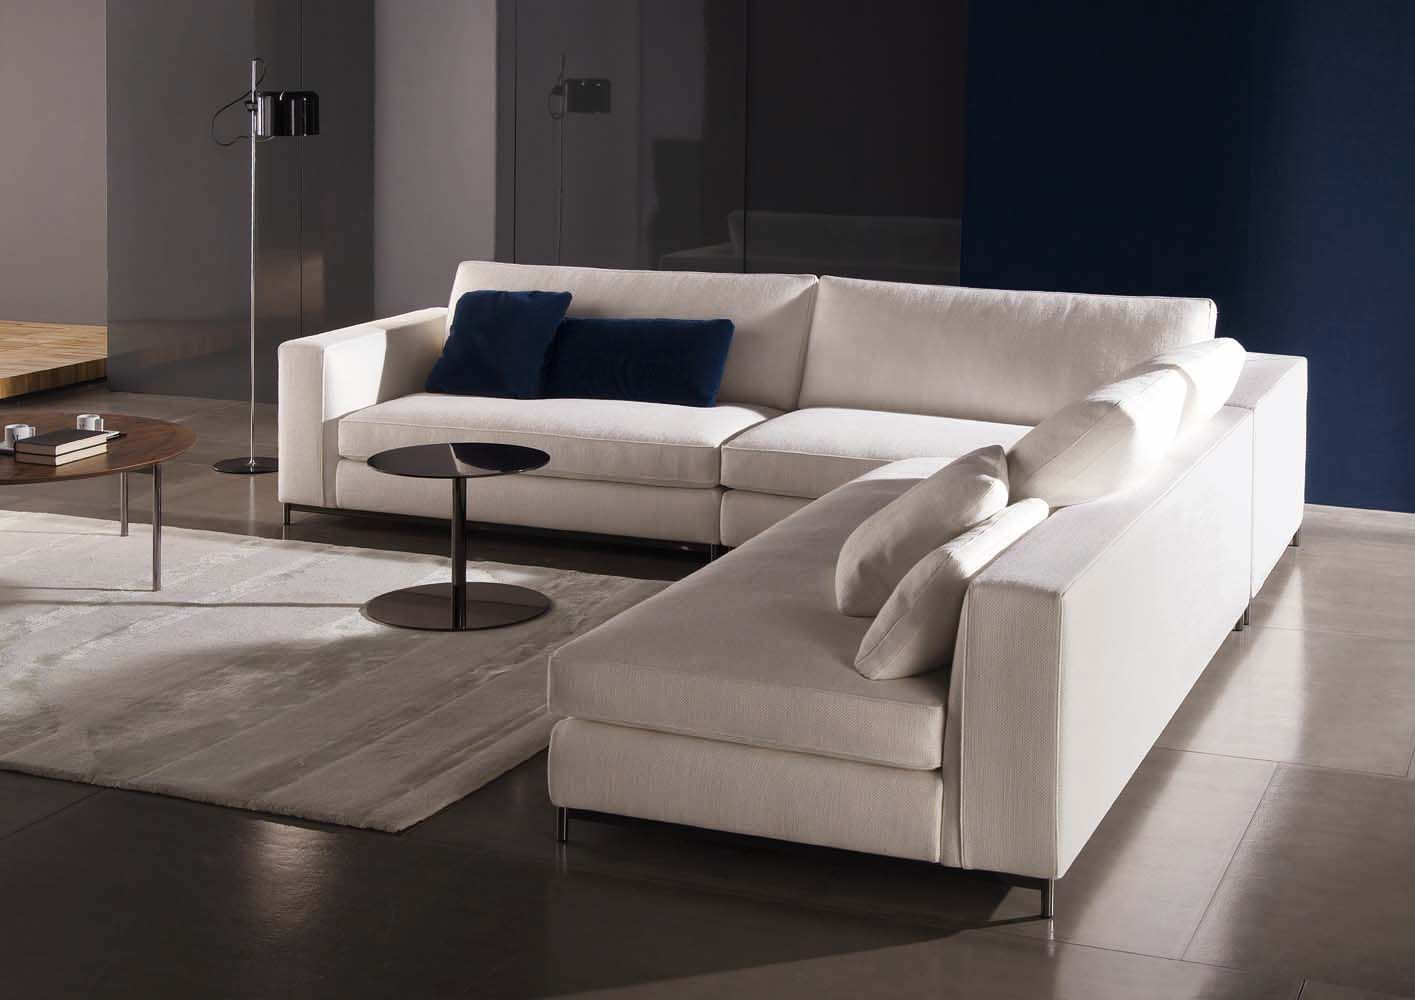 L Shape Sofa Sectional Sofa Furniture Sofa Set Modern Sectional